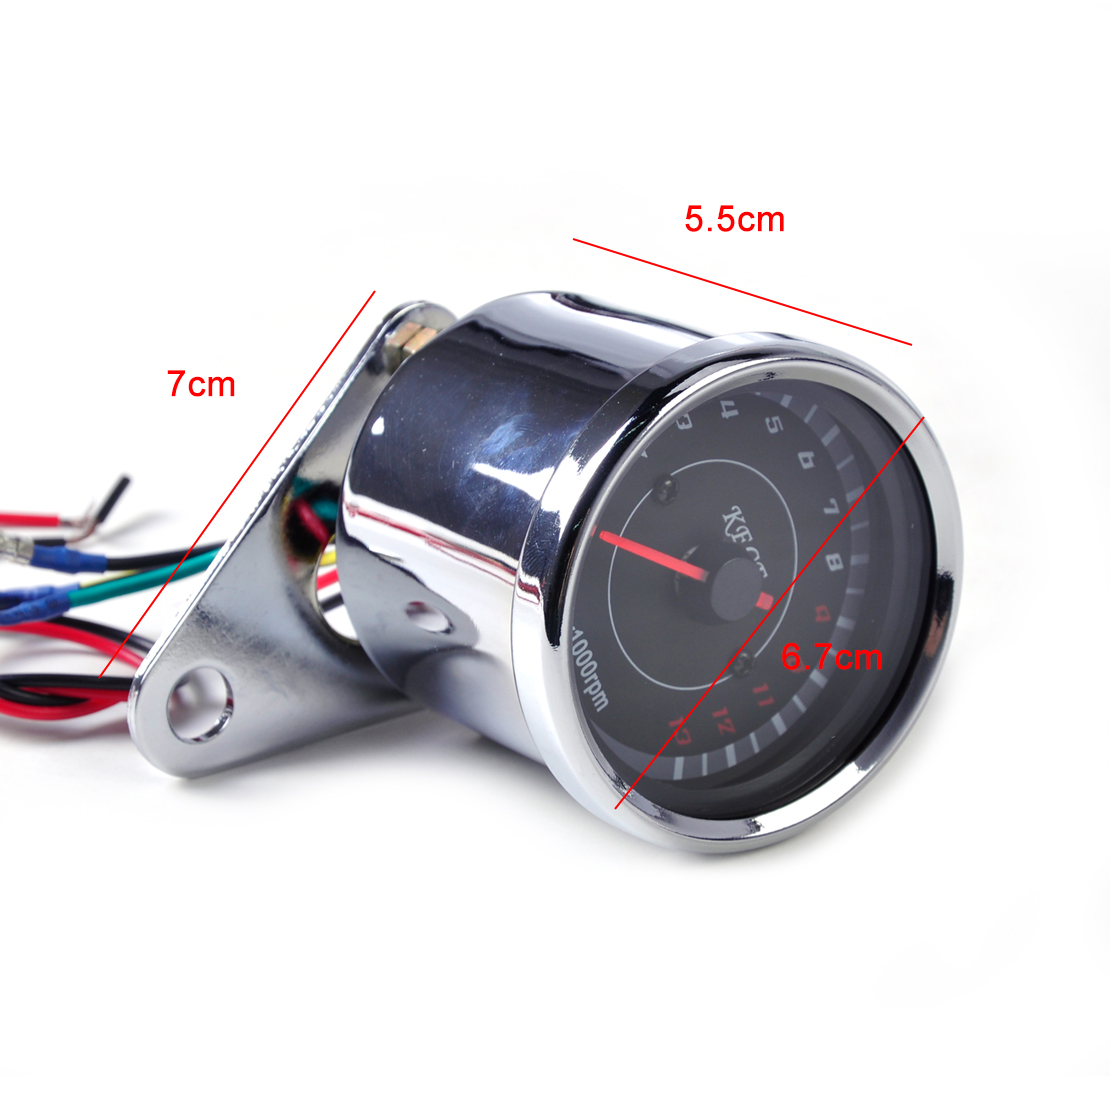 Beler 60mm Led 13000 Rpm Tachometer For Scooter Analog Tacho Meter Circuit Bar Click Here Gauge Motorcycle Honda Yamaha Kawasaki Suzuki Choppers